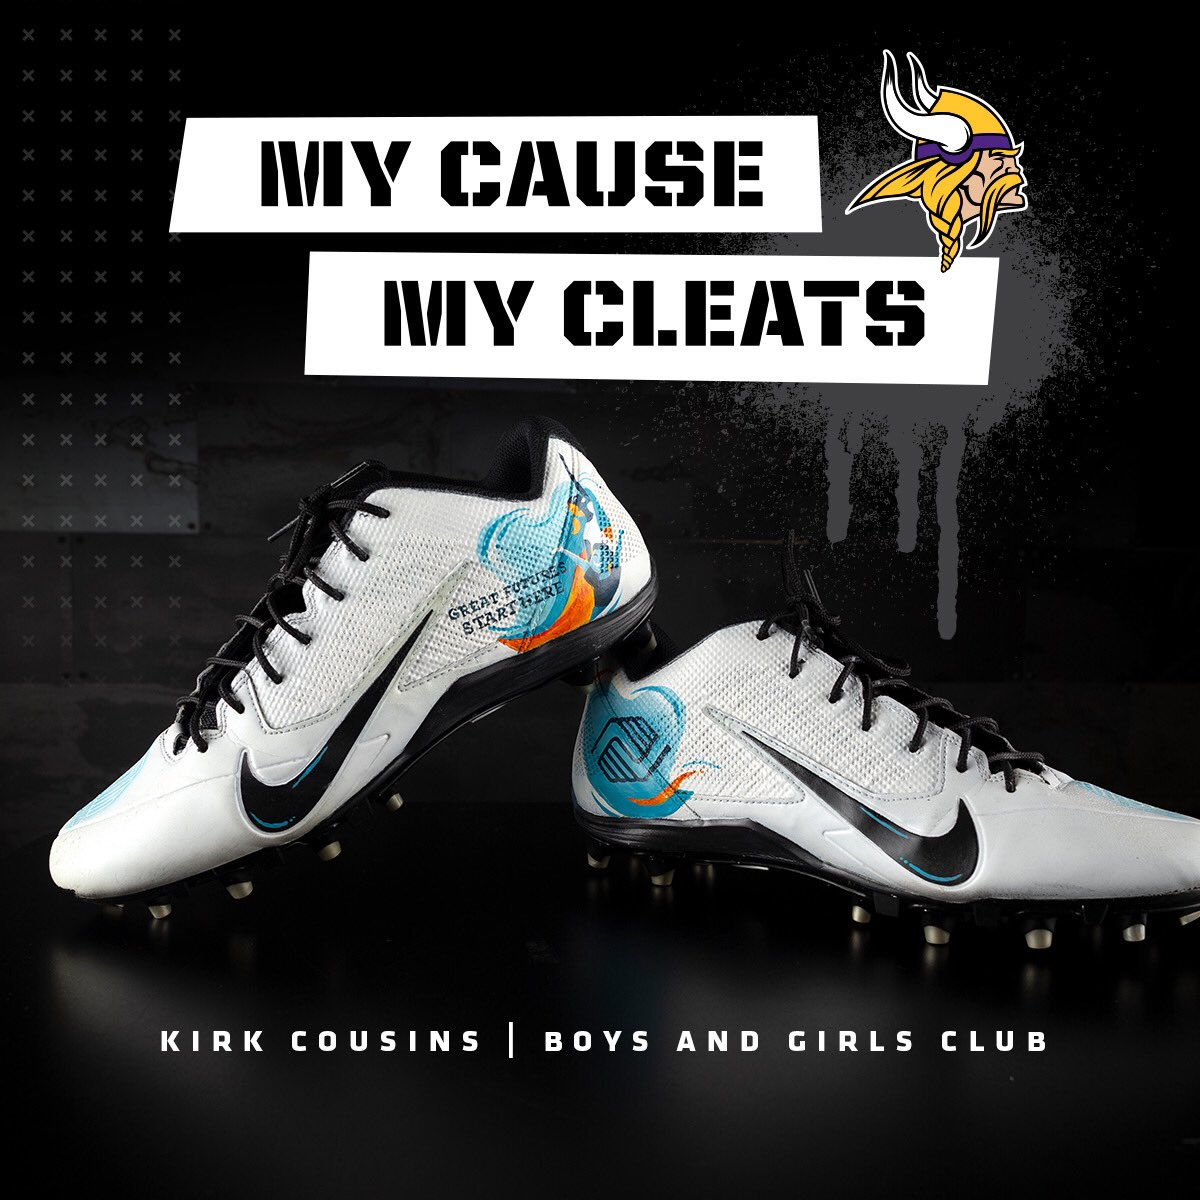 Julie and I are excited to work with Boys and Girls Club and welcome them as a new Generosity Partner of our Foundation. Looking forward to representing BGCA on Sunday with #MyCauseMyCleats!